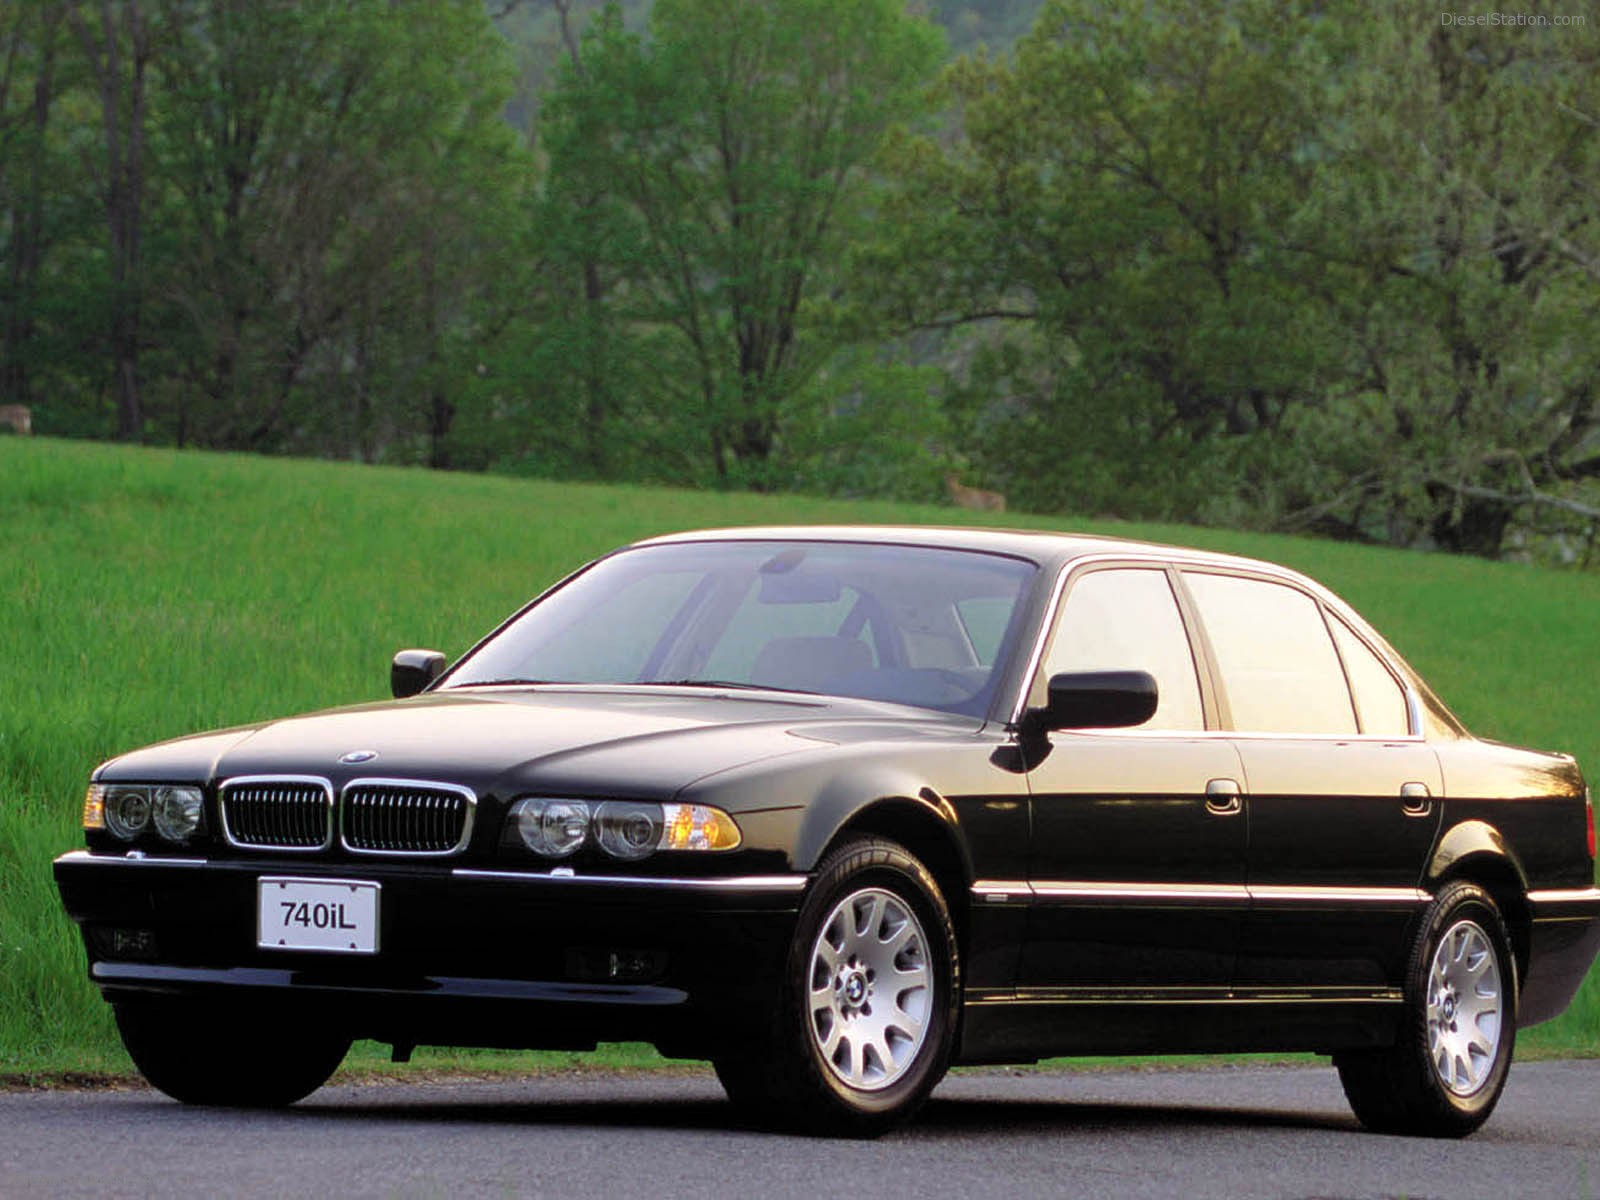 7 Serie Bmw 7 Series Cars Specifications Technical Data